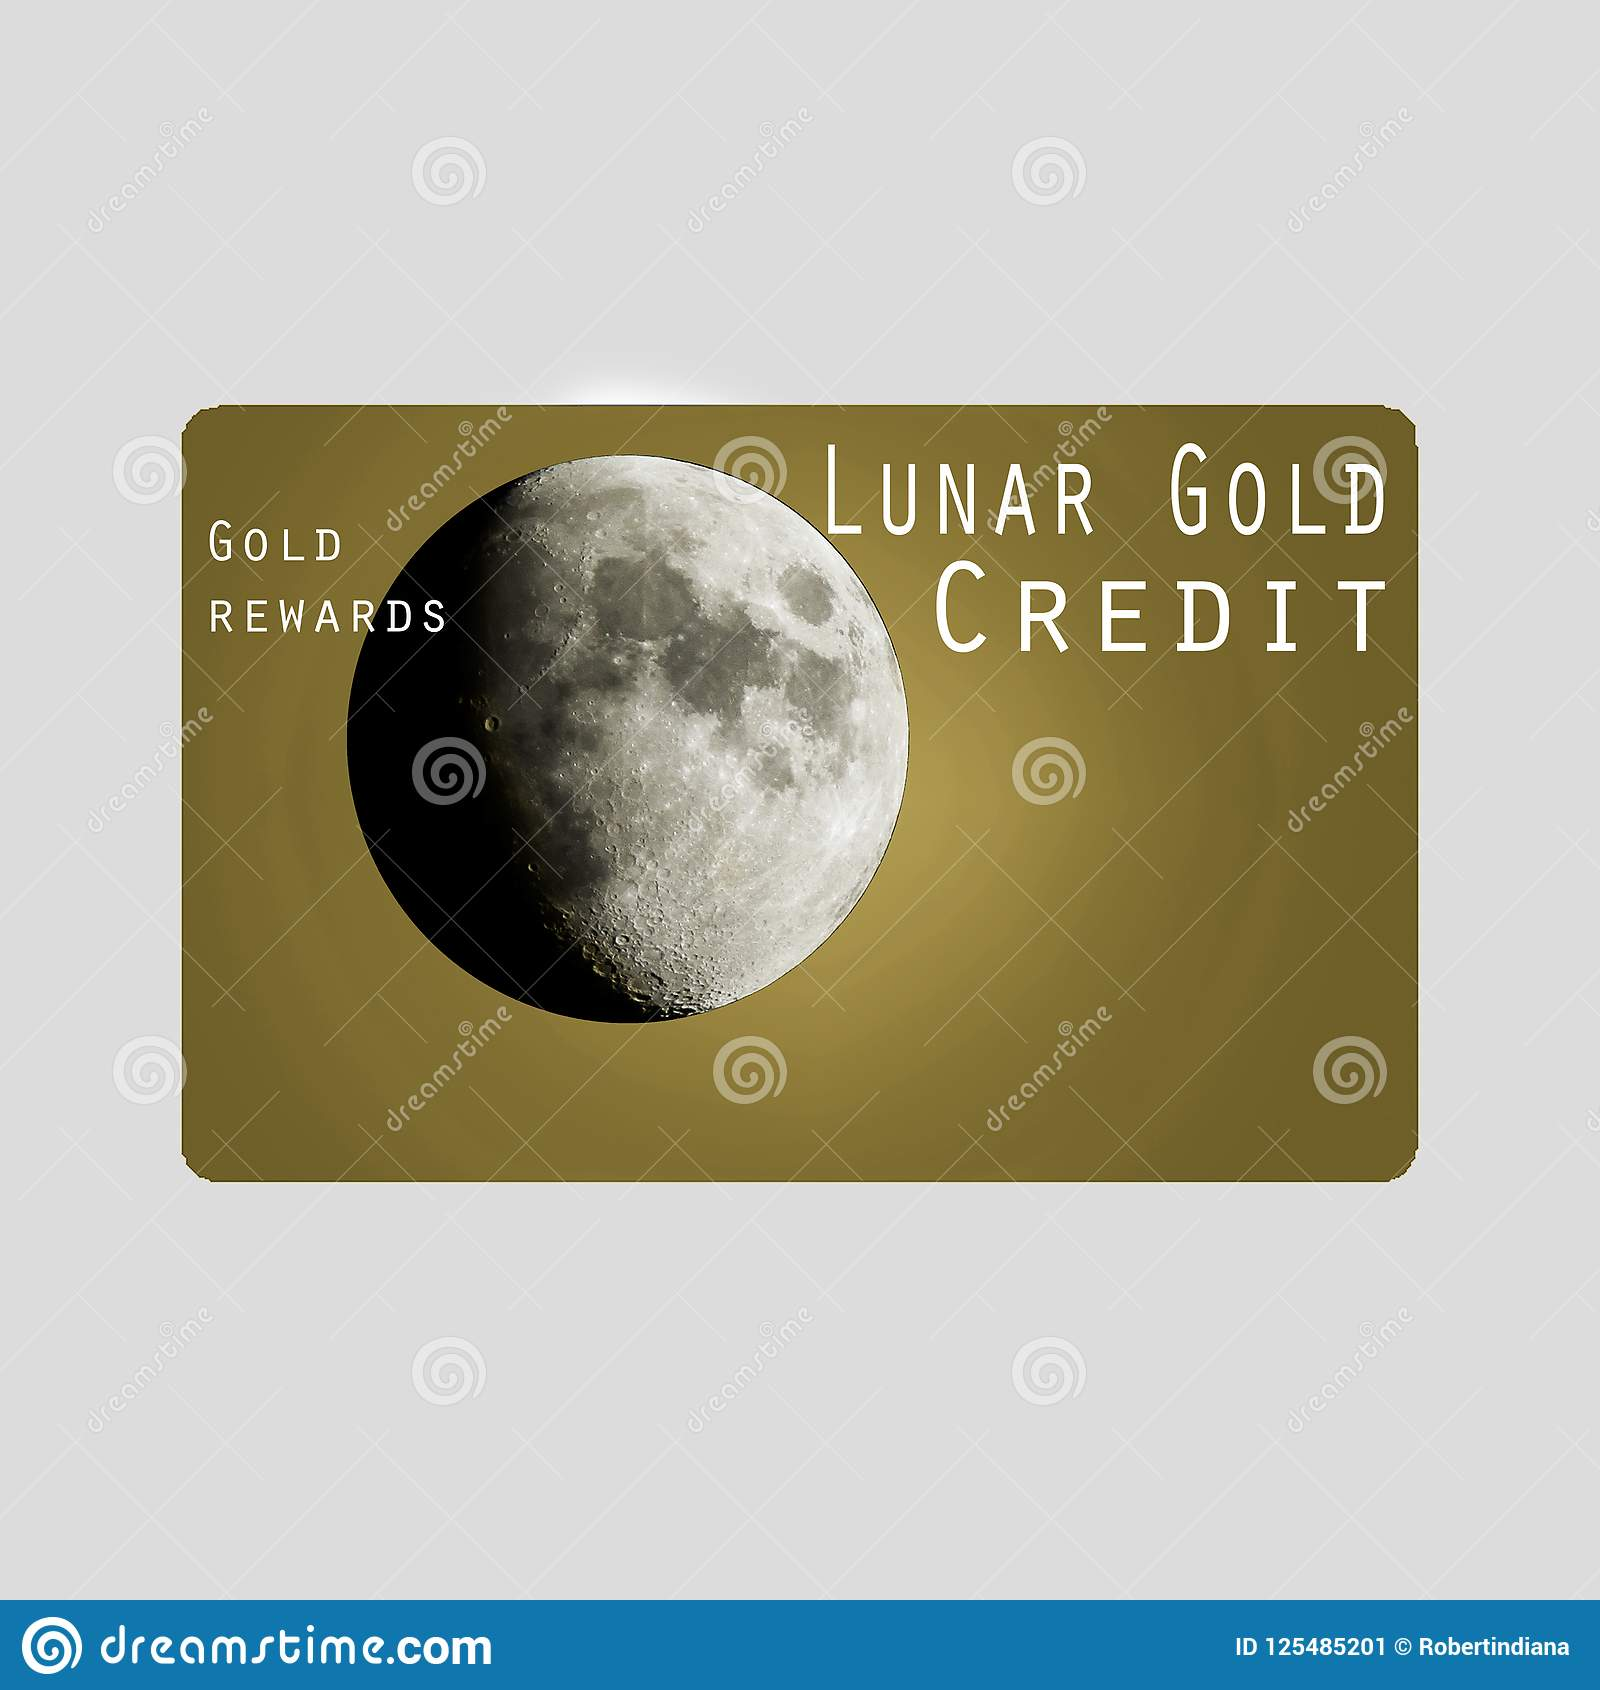 This is a generic credit card isolated on a white background.